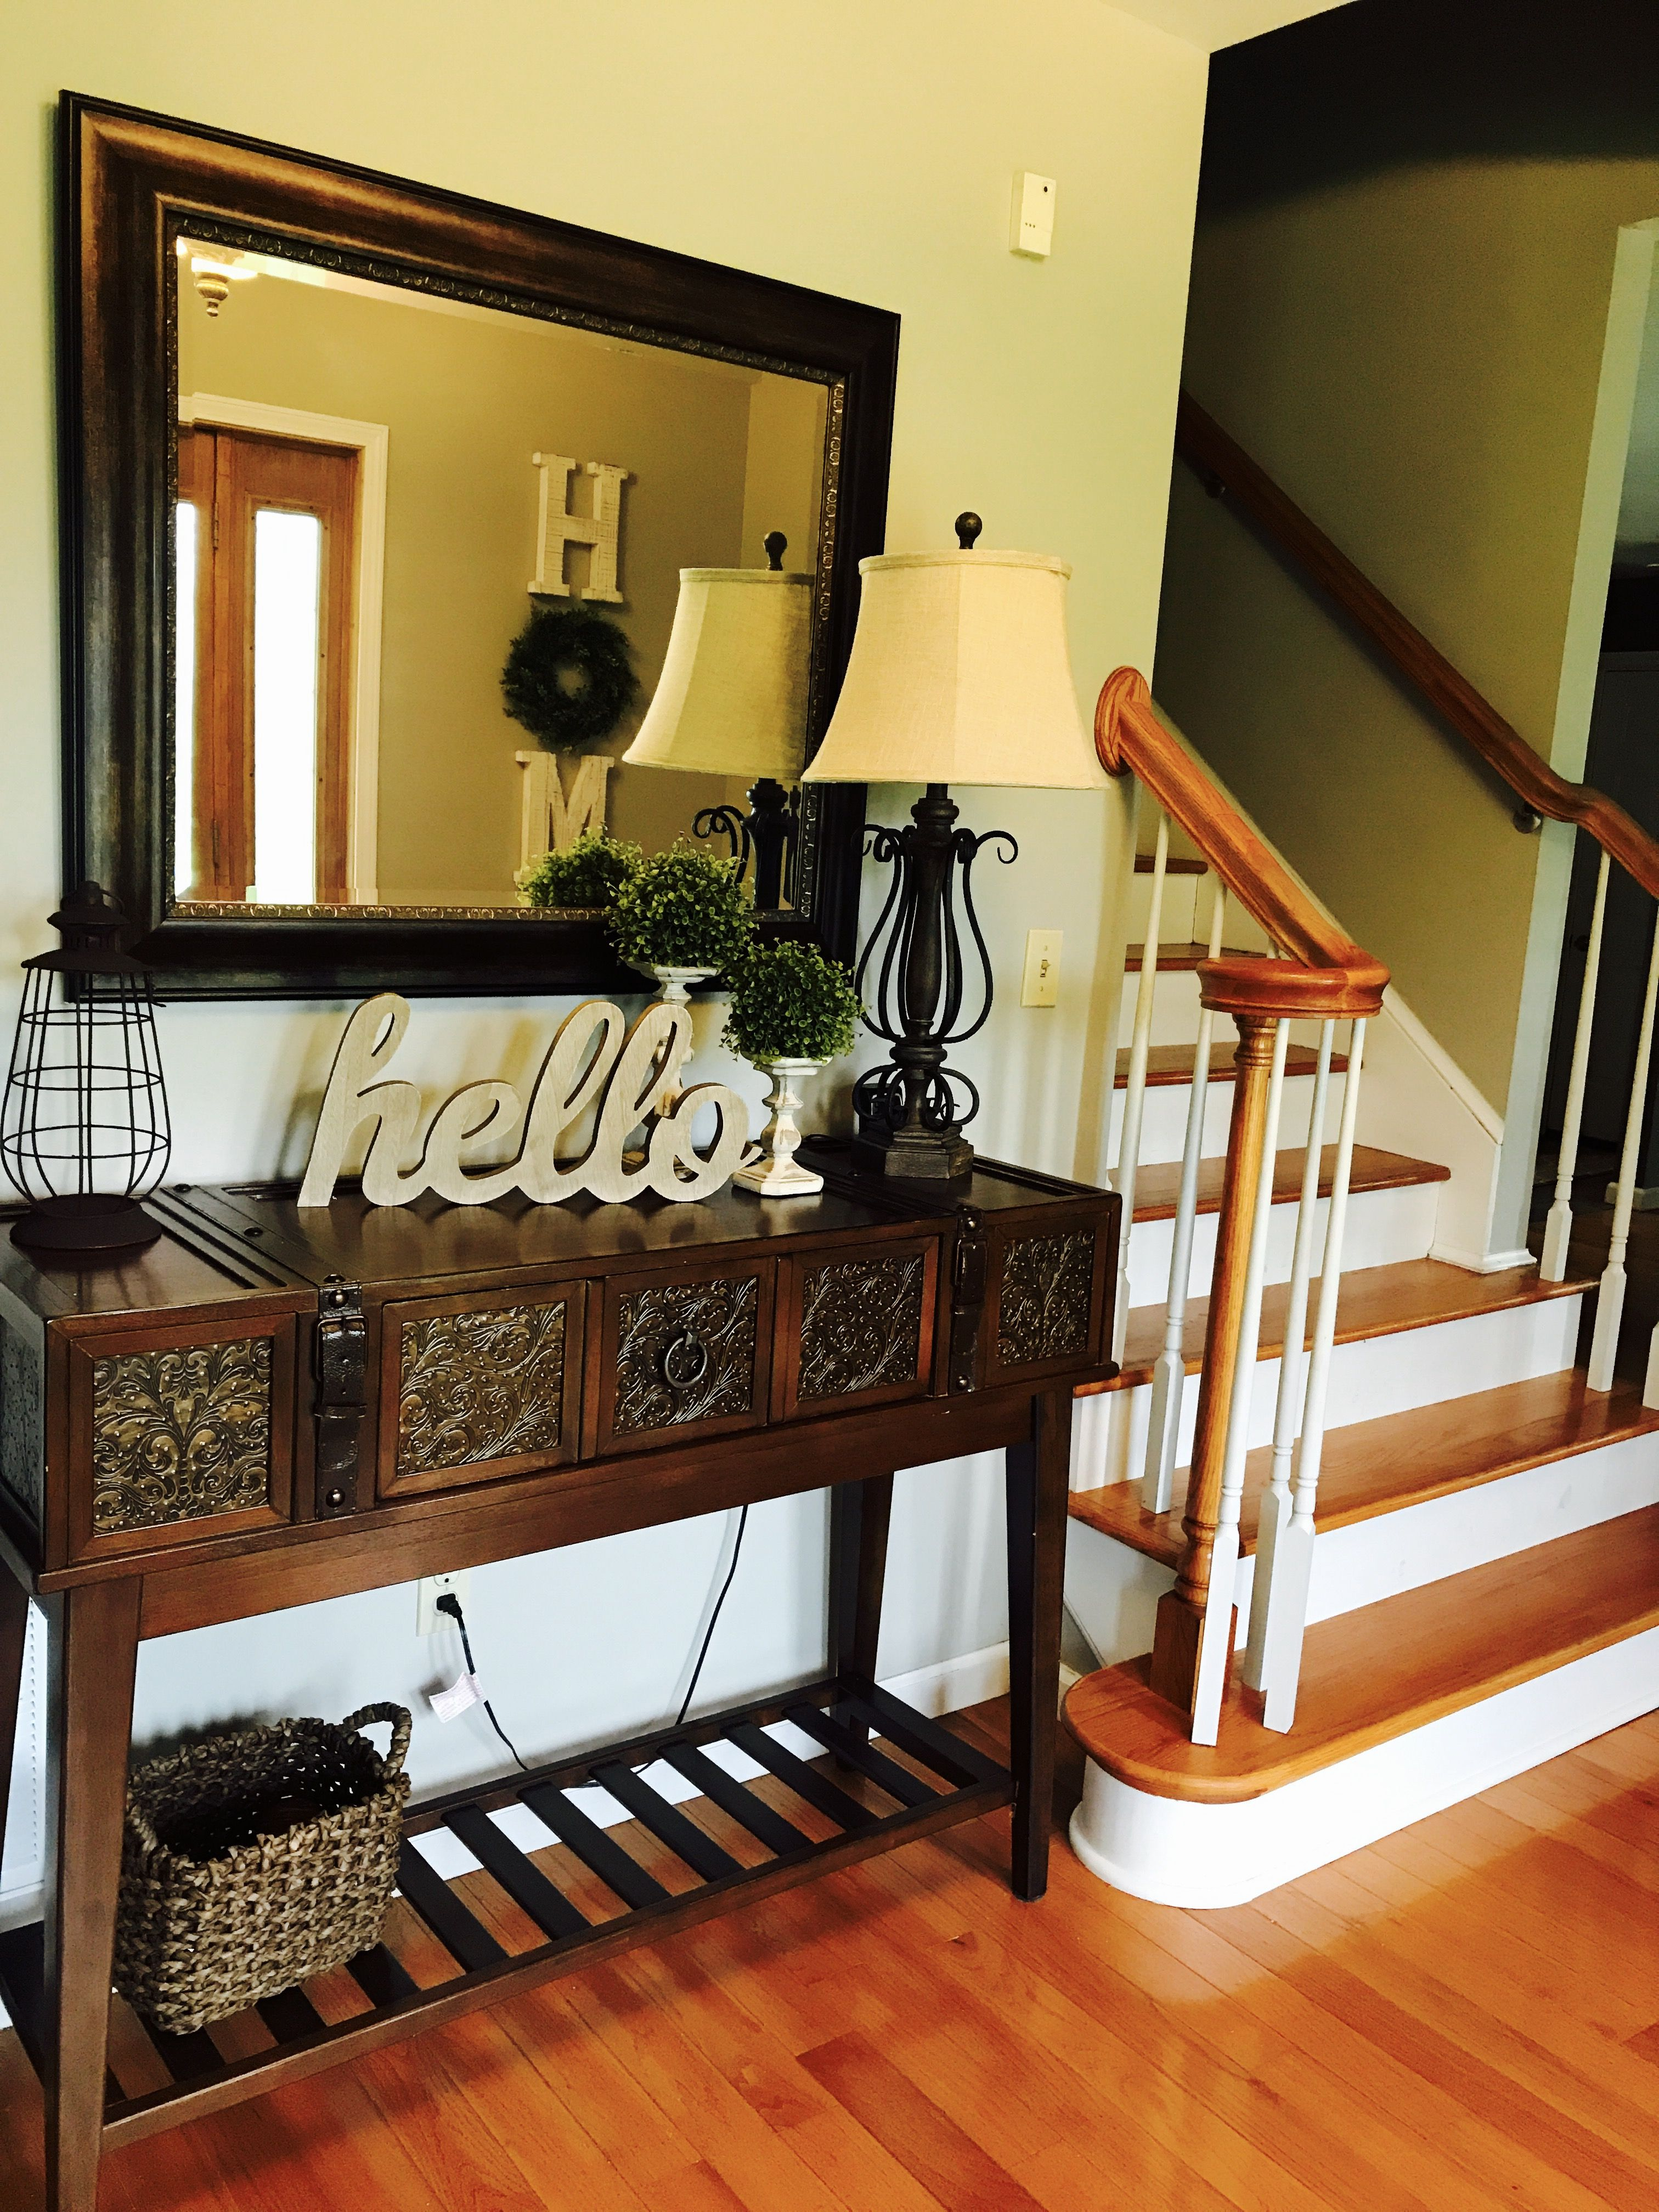 Farmhouse Addition Home Design Ideas Pictures Remodel And Decor: How To Decorate Your Foyer Farmhouse Style. Farmhouse Style Decorating Ideas. Home Decor. Hobby